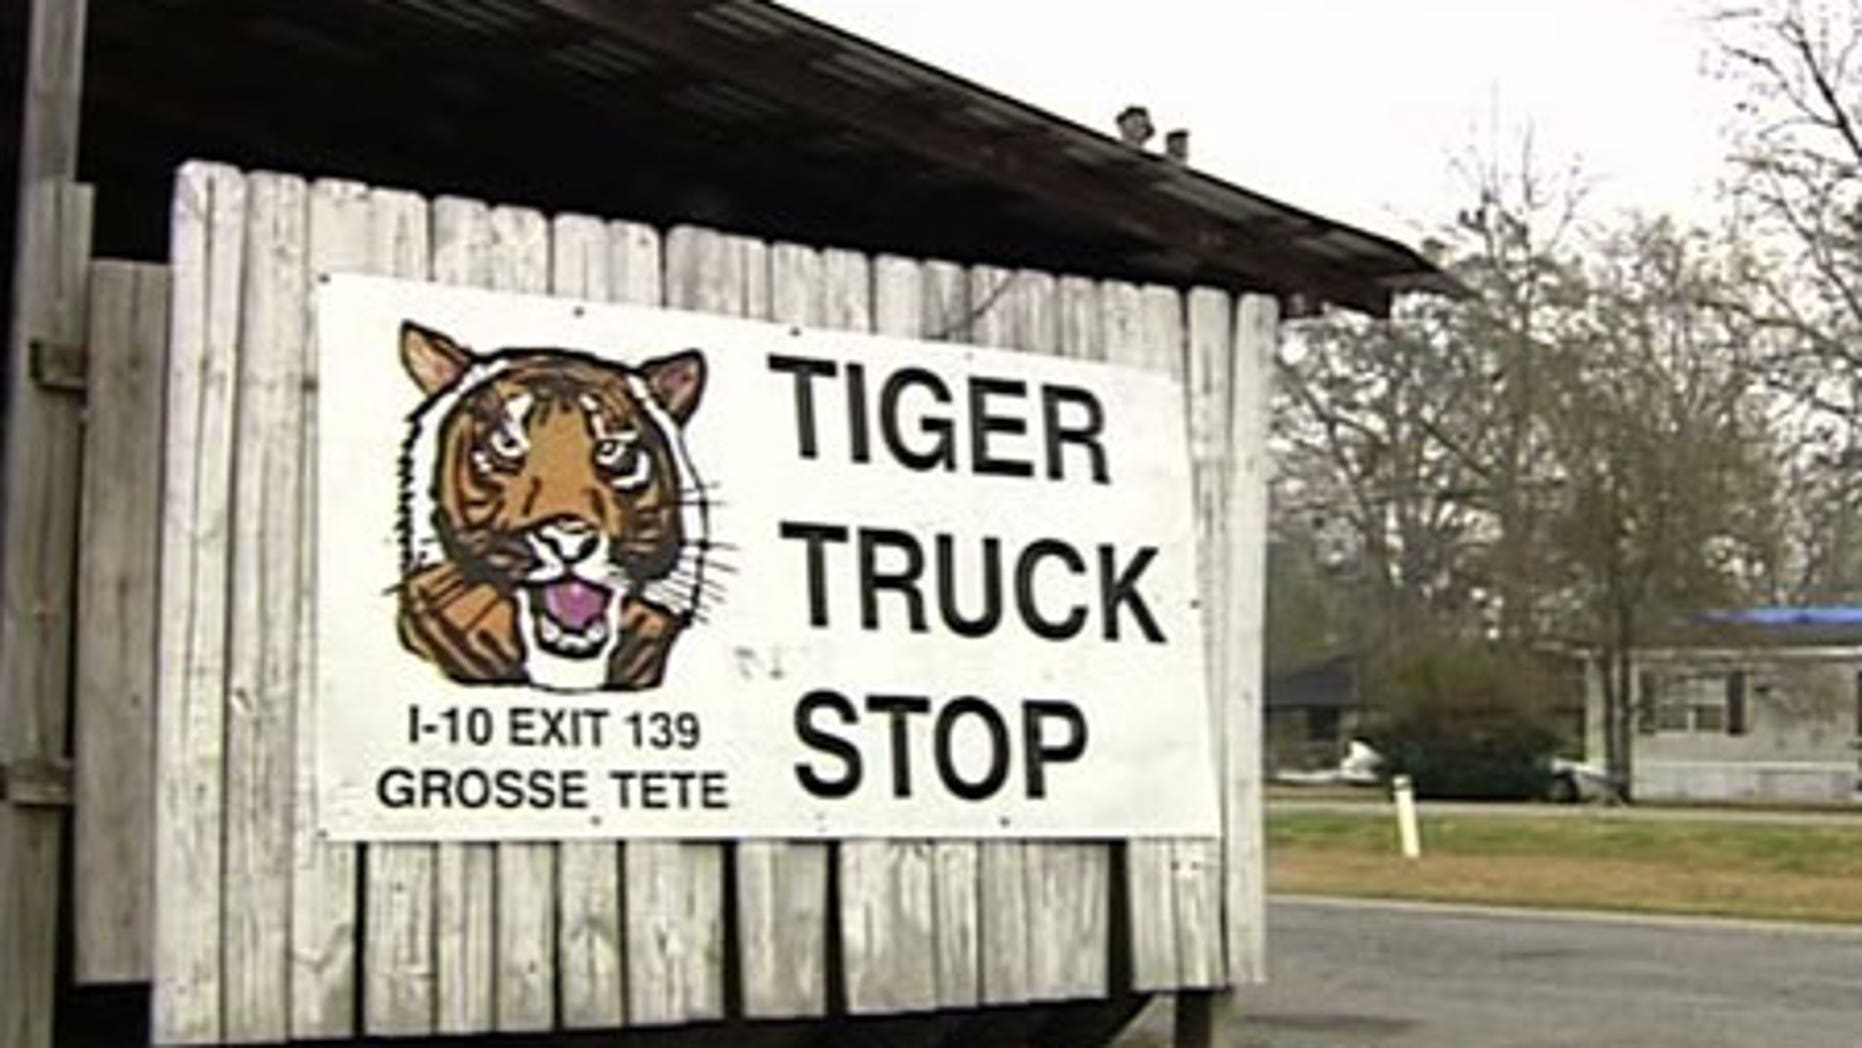 Activists and a truck-stop owner are battling it out over the fate of Tony the Tiger, a roadside attraction in Grosse Tete, La.